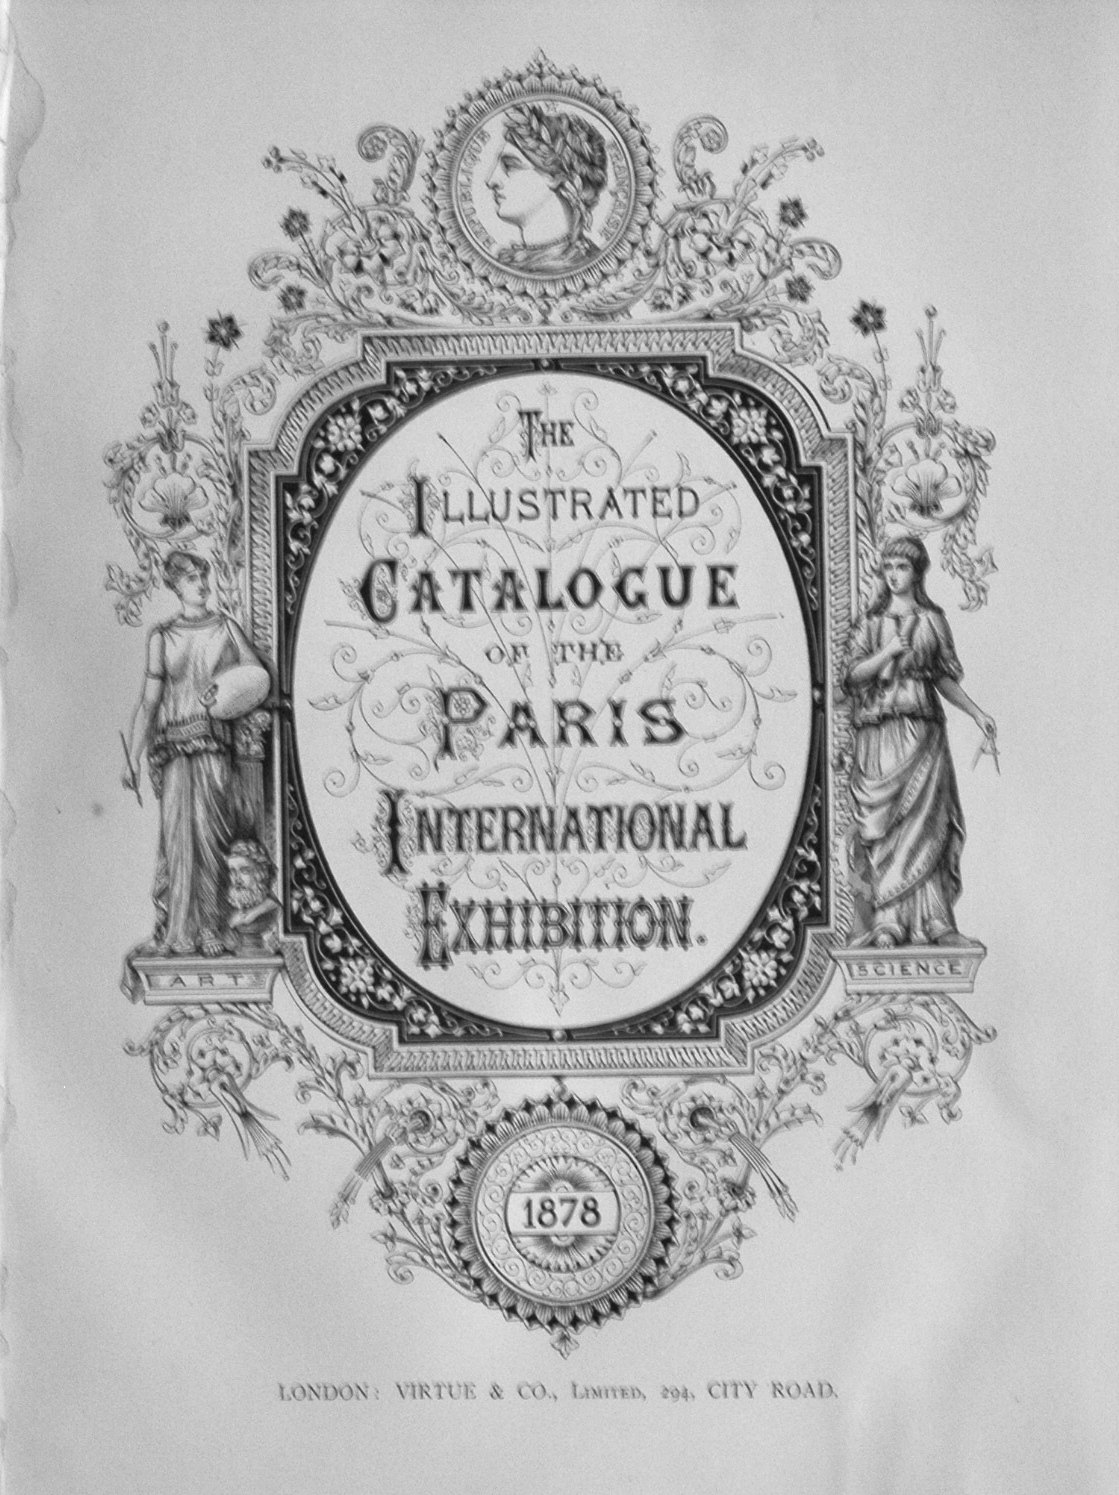 The Illustrated Catalogue of the Paris International Exhibition 1878.